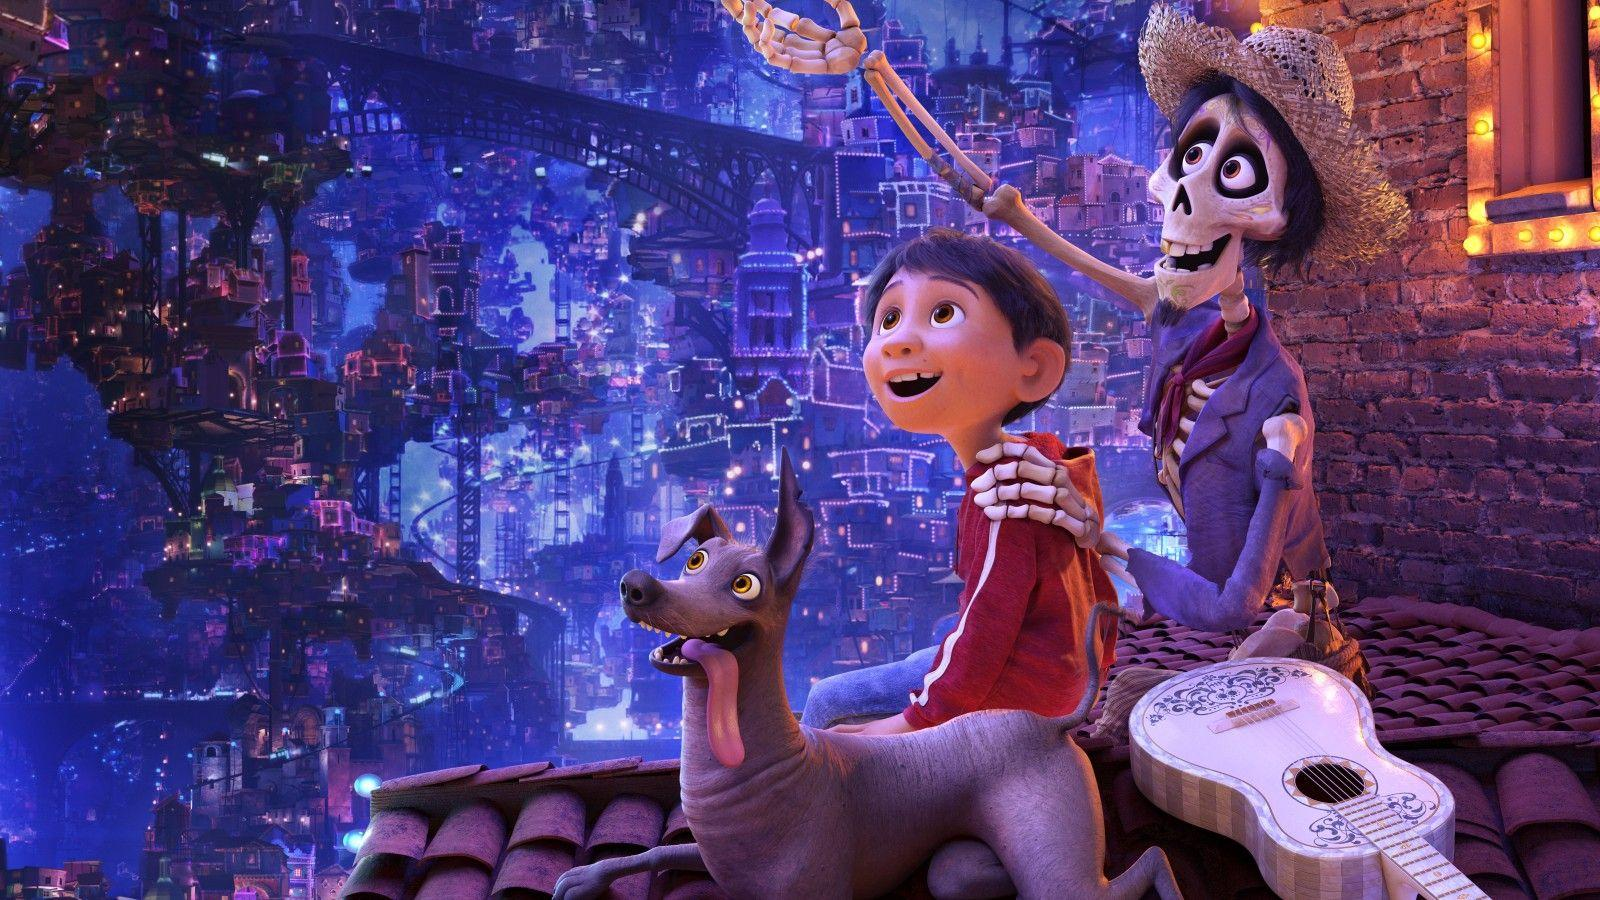 Wallpapers Coco, Miguel, Dante, Hector, Pixar, Animation, 2017, HD